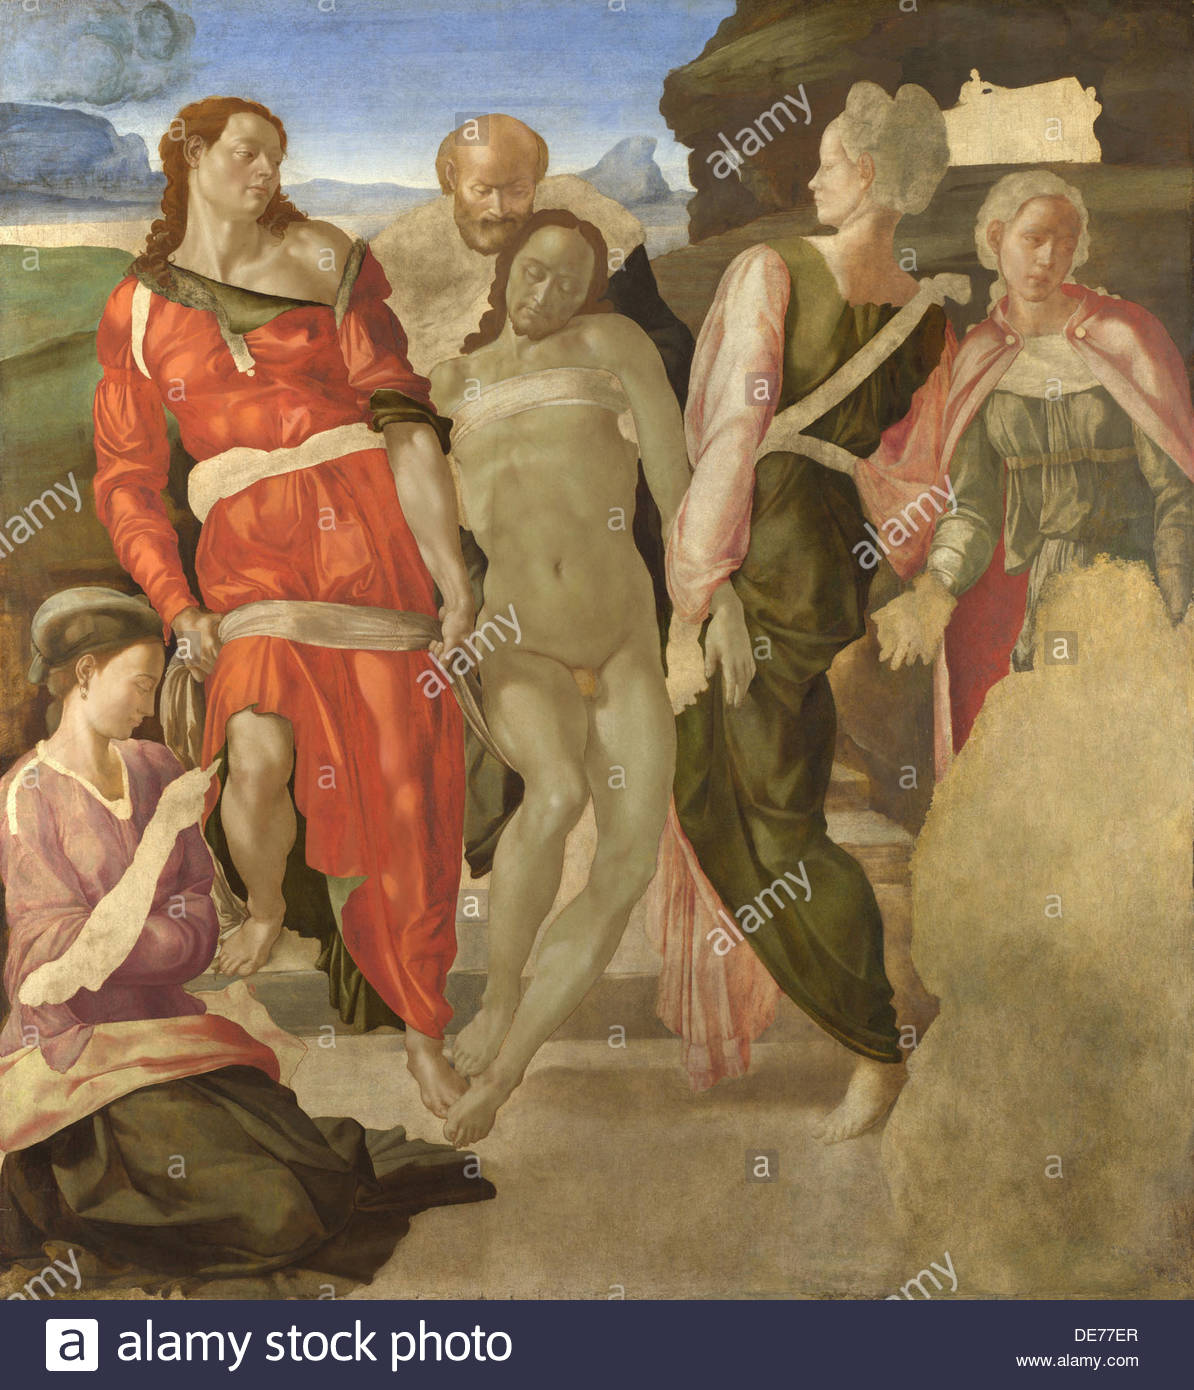 The Entombment of Christ, c. 1500. Artist: Buonarroti, Michelangelo (1475-1564) - Stock Image